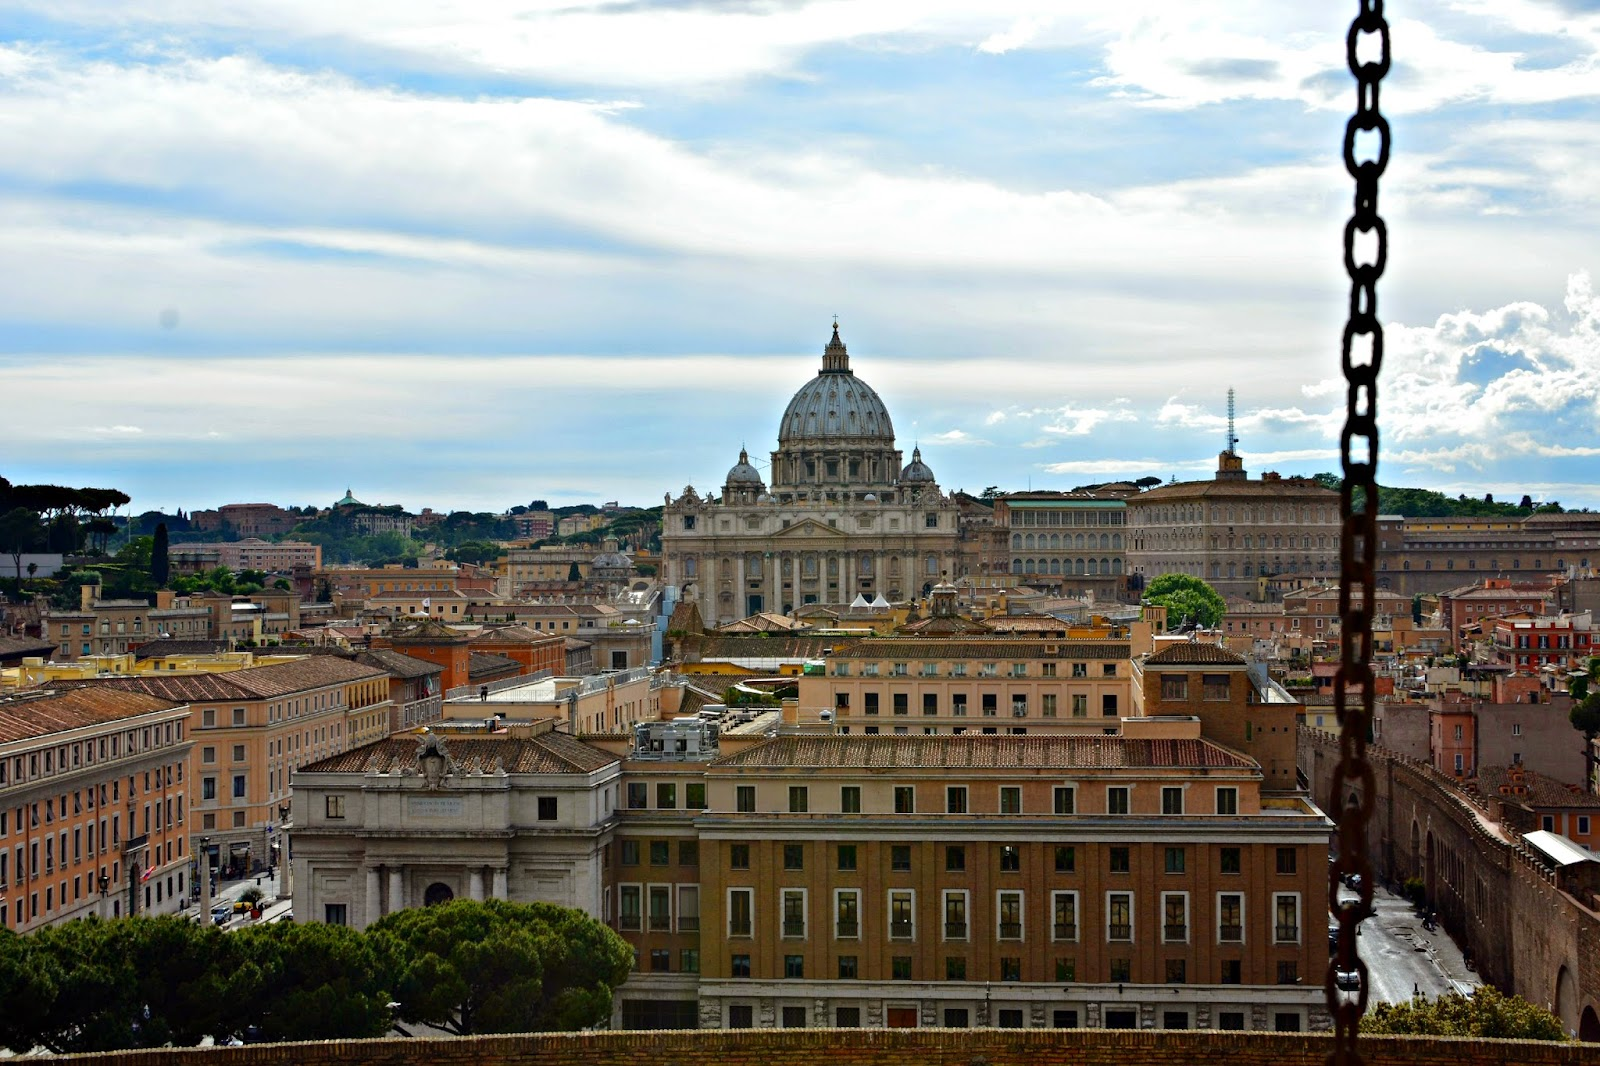 View of St Peter's Basilica from Castel Sant'Angelo